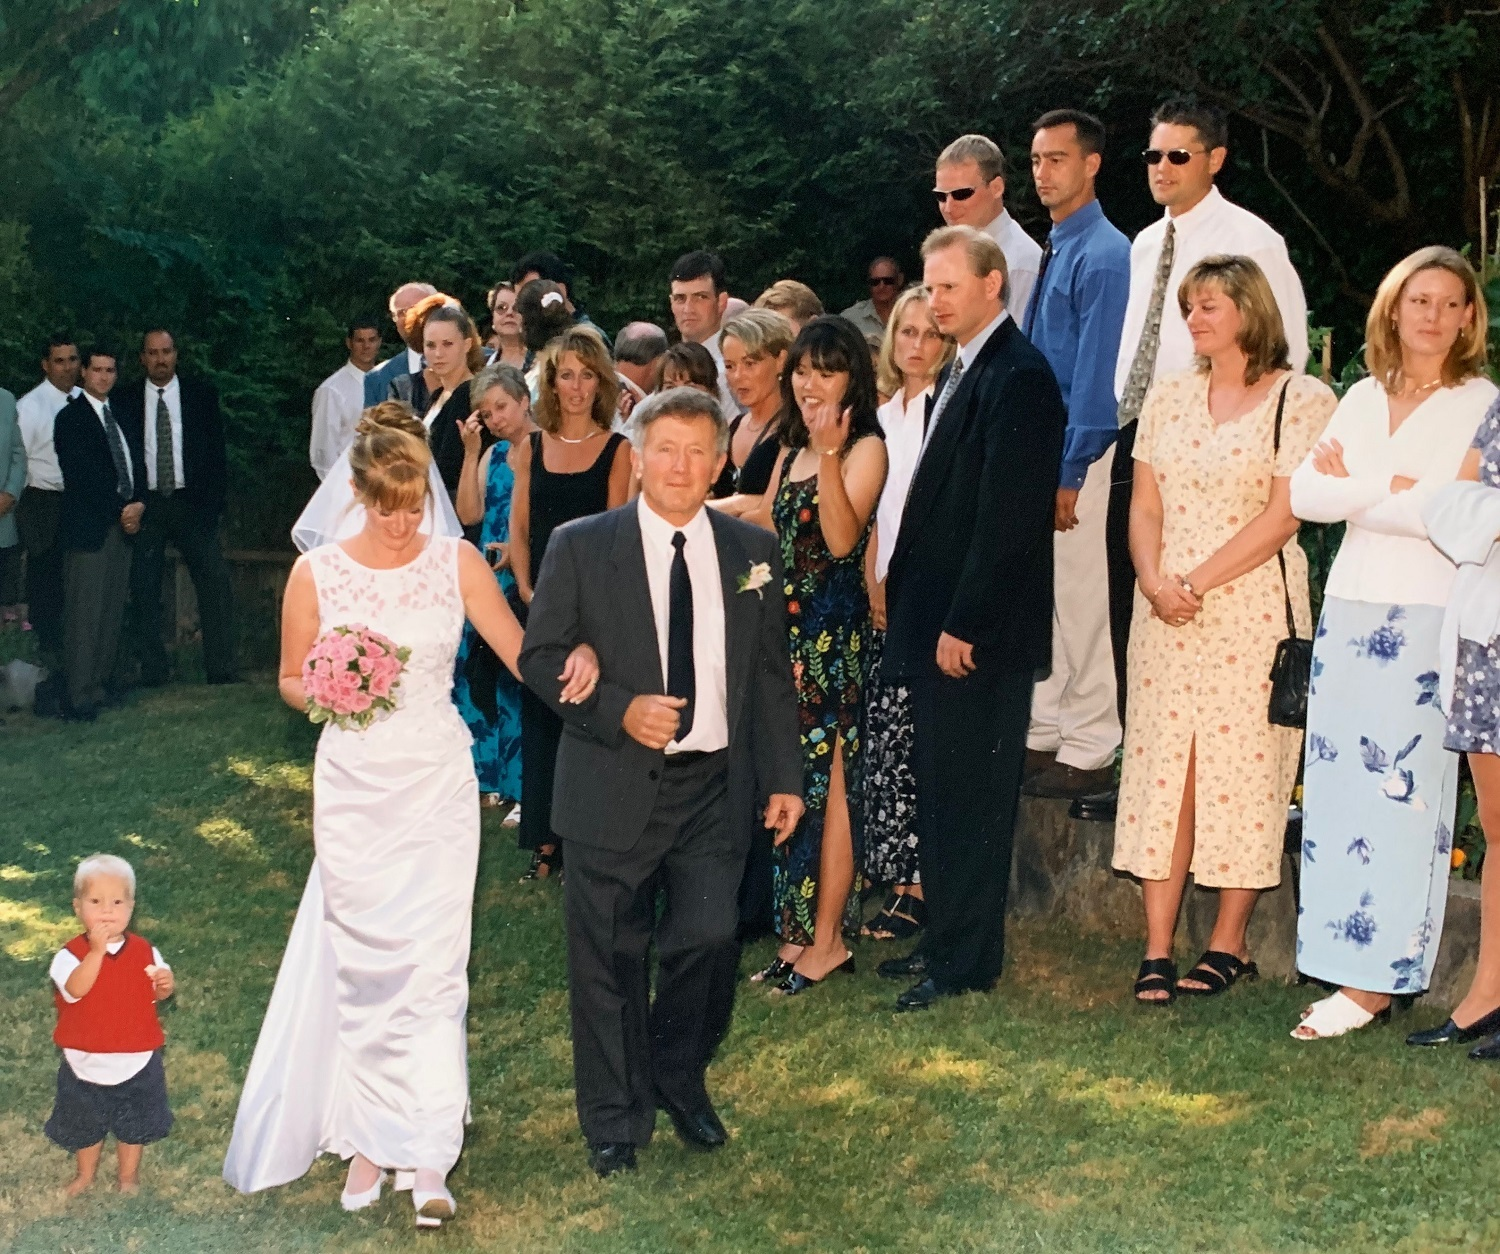 Megan Frederick walks down the aisle arm-in-arm with her father, Michael Smith, on her wedding day. (Submitted by family)